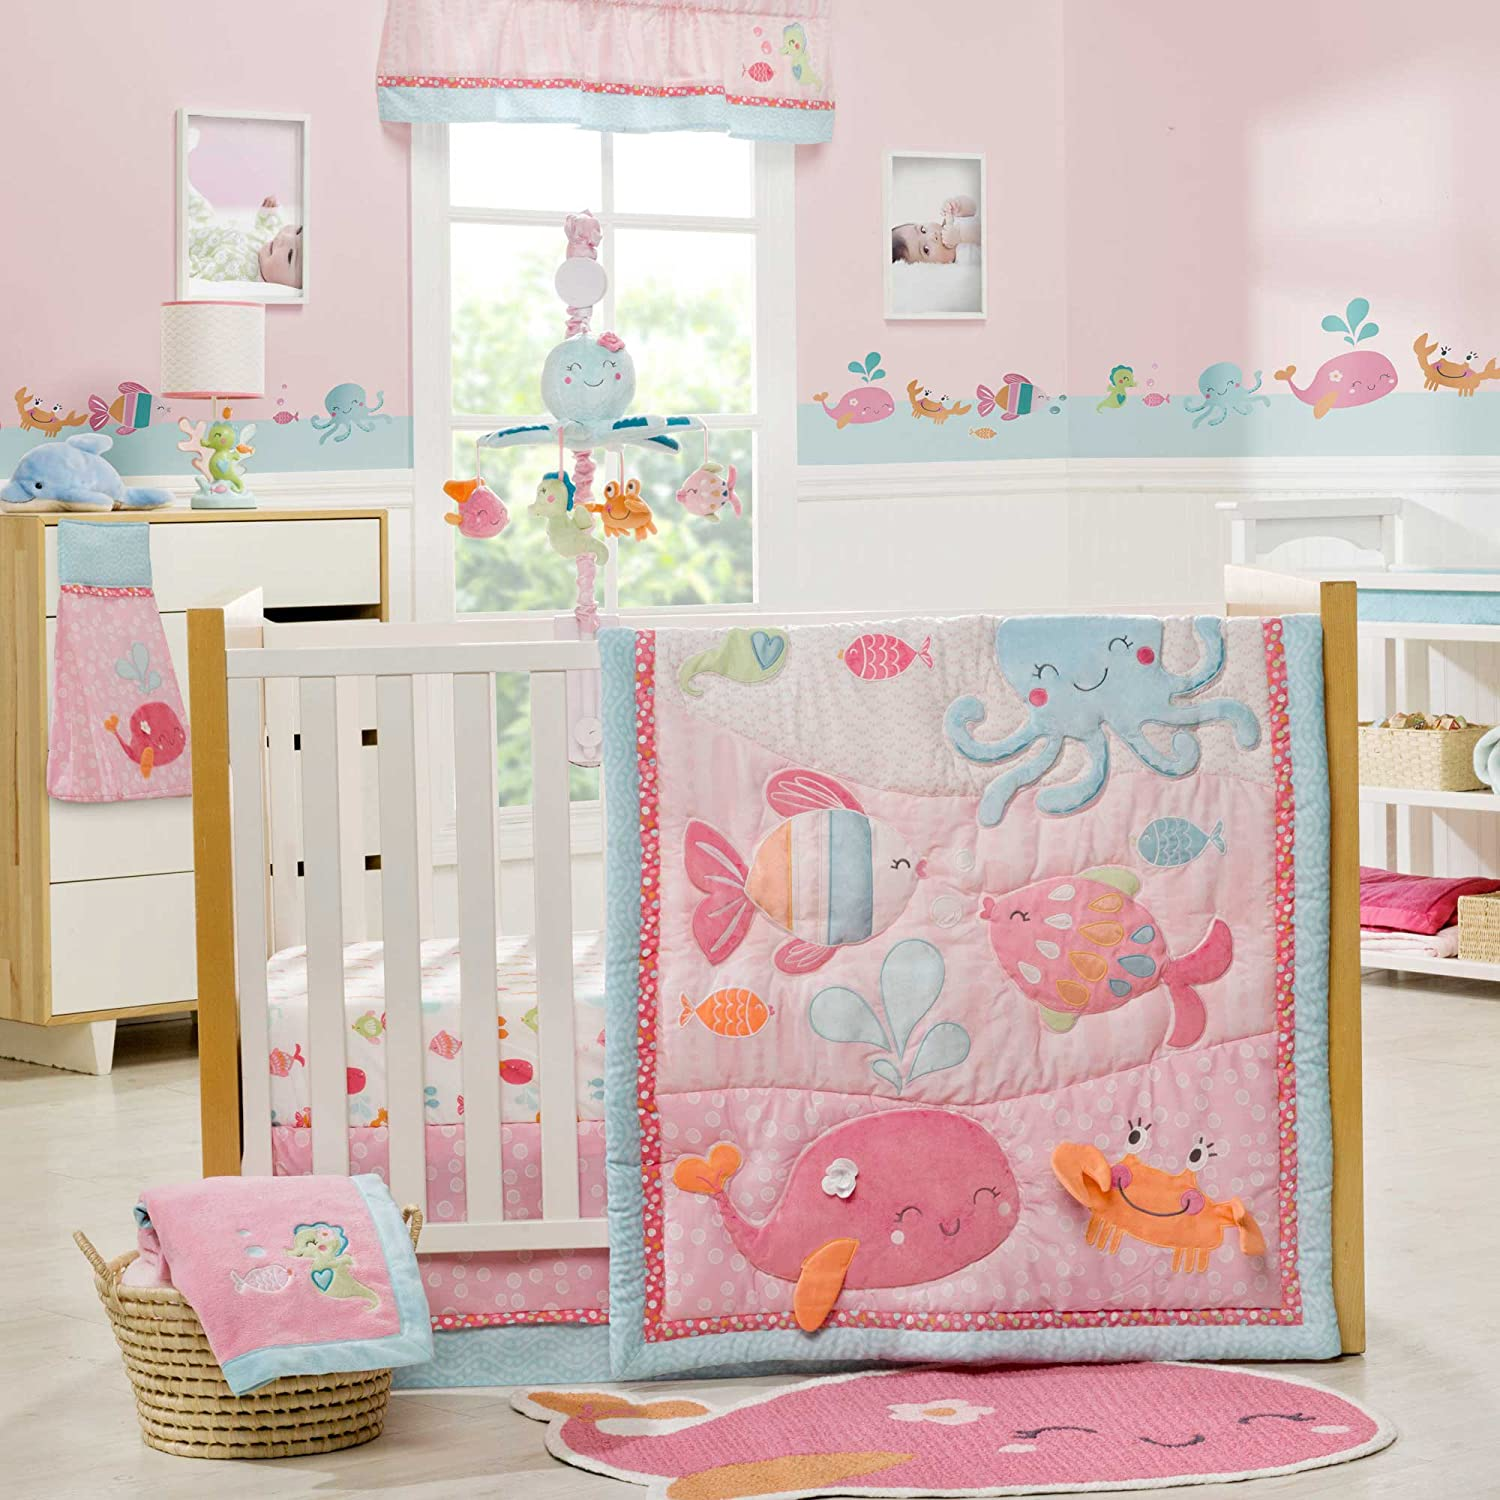 Under the Sea 4 Piece Baby Crib Bedding Set by Carters (Sea Collection) by Carter's